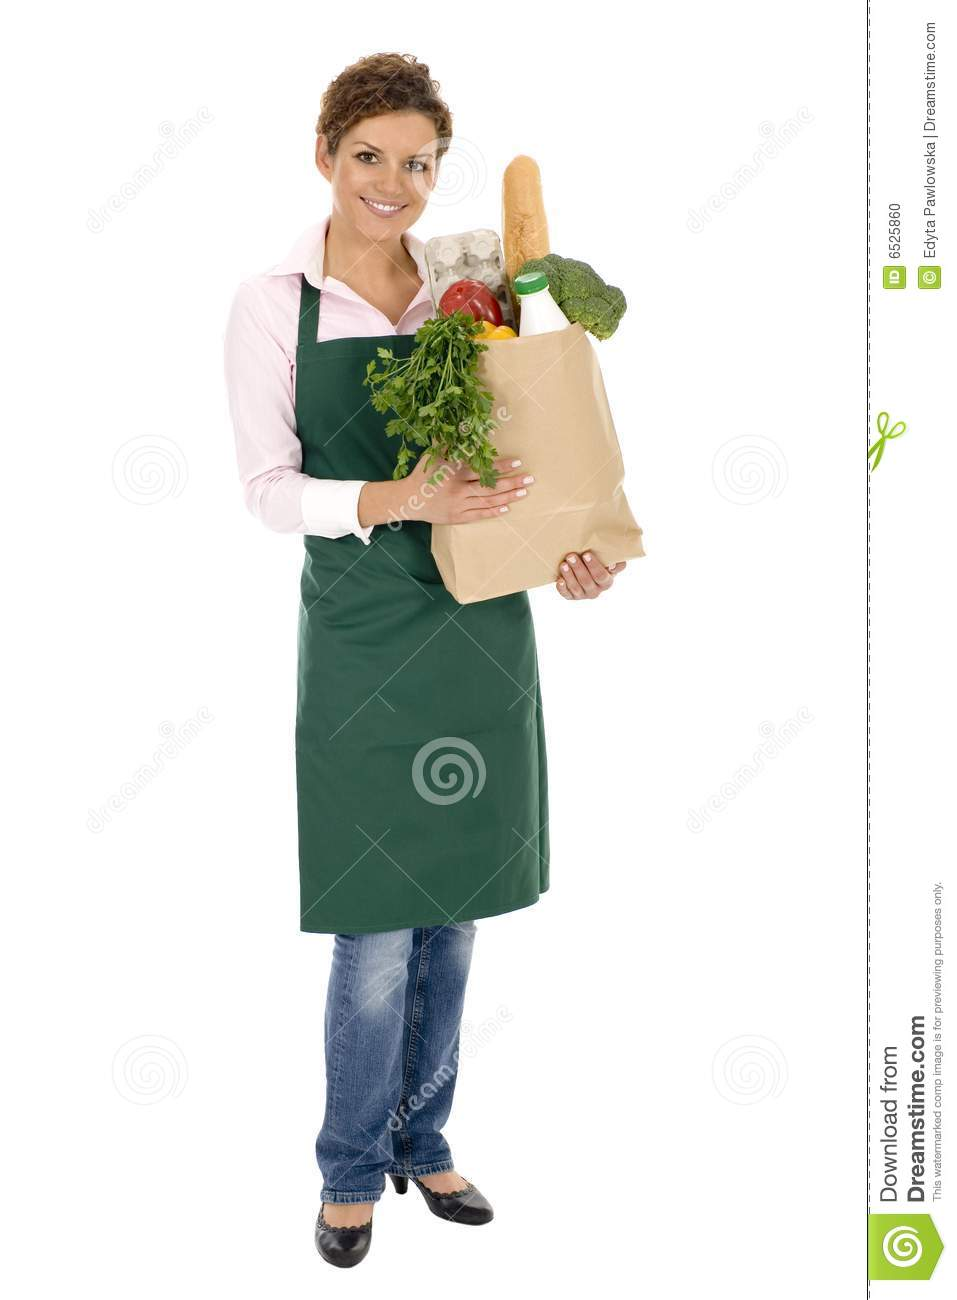 Original Young Woman Holding Christmas Gift Bag Royalty Free Stock Image - Image 22372616